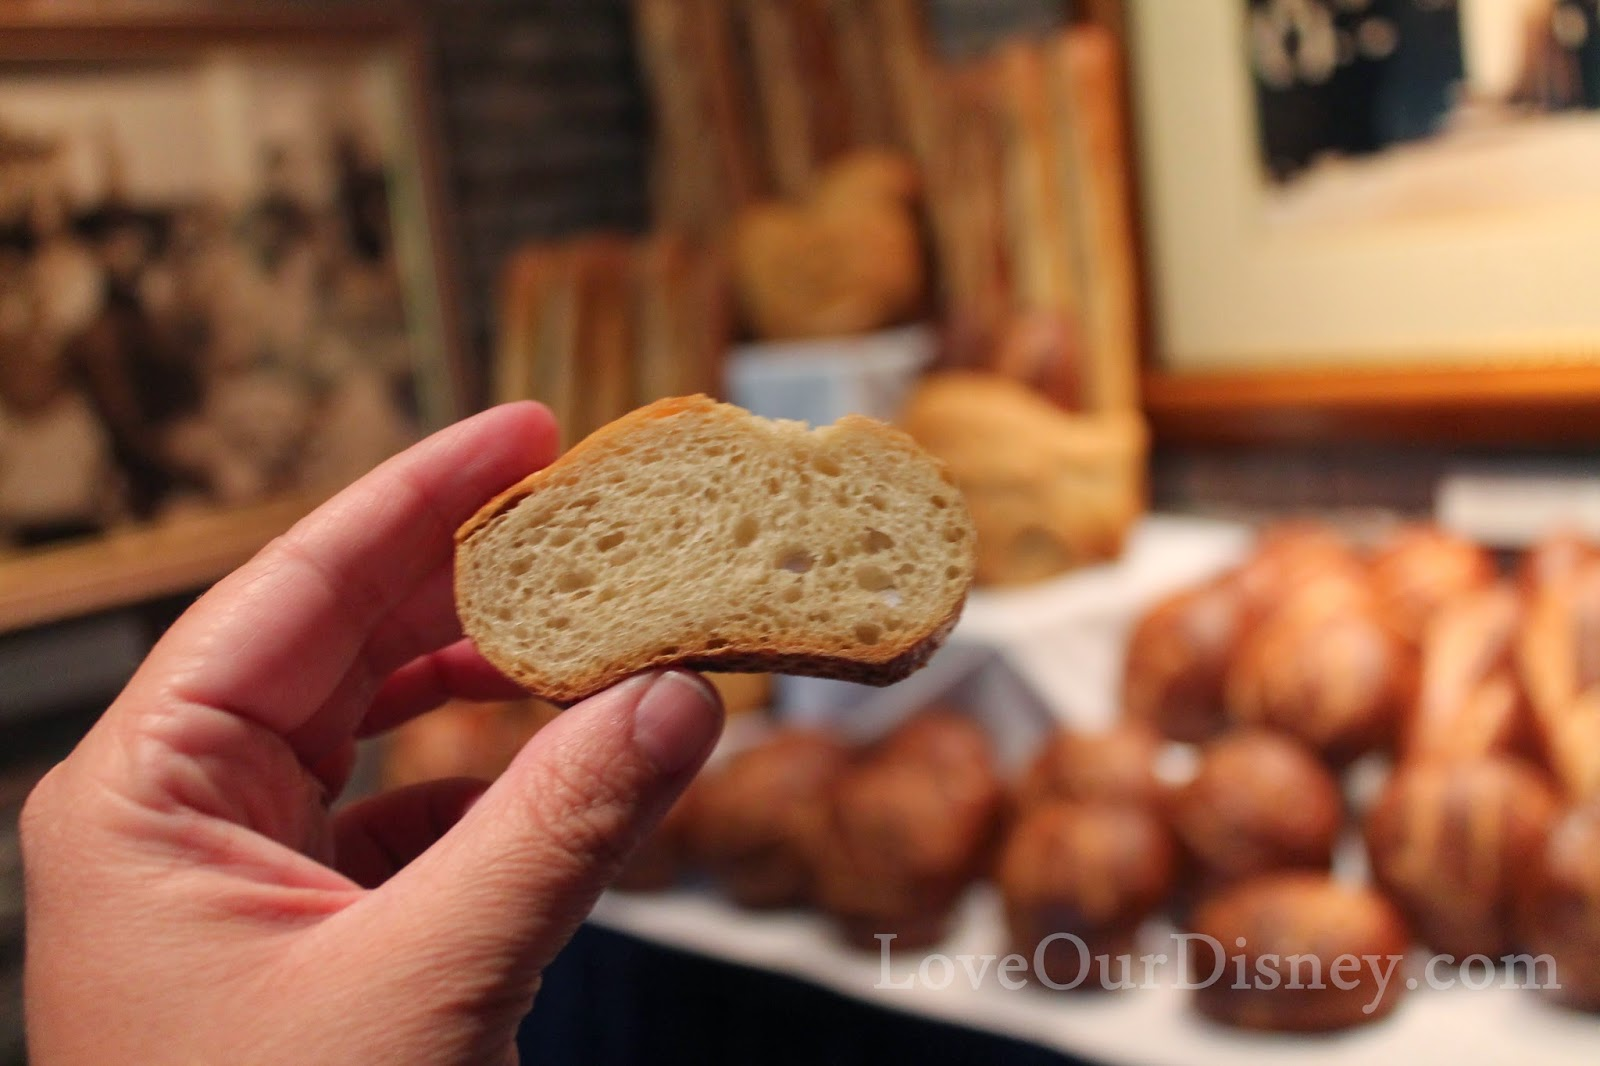 This free bread sample is part of the bakery tour at Disney California Adventure in Disneyland. LoveOurDisney.com is sharing if the tour is a must-do